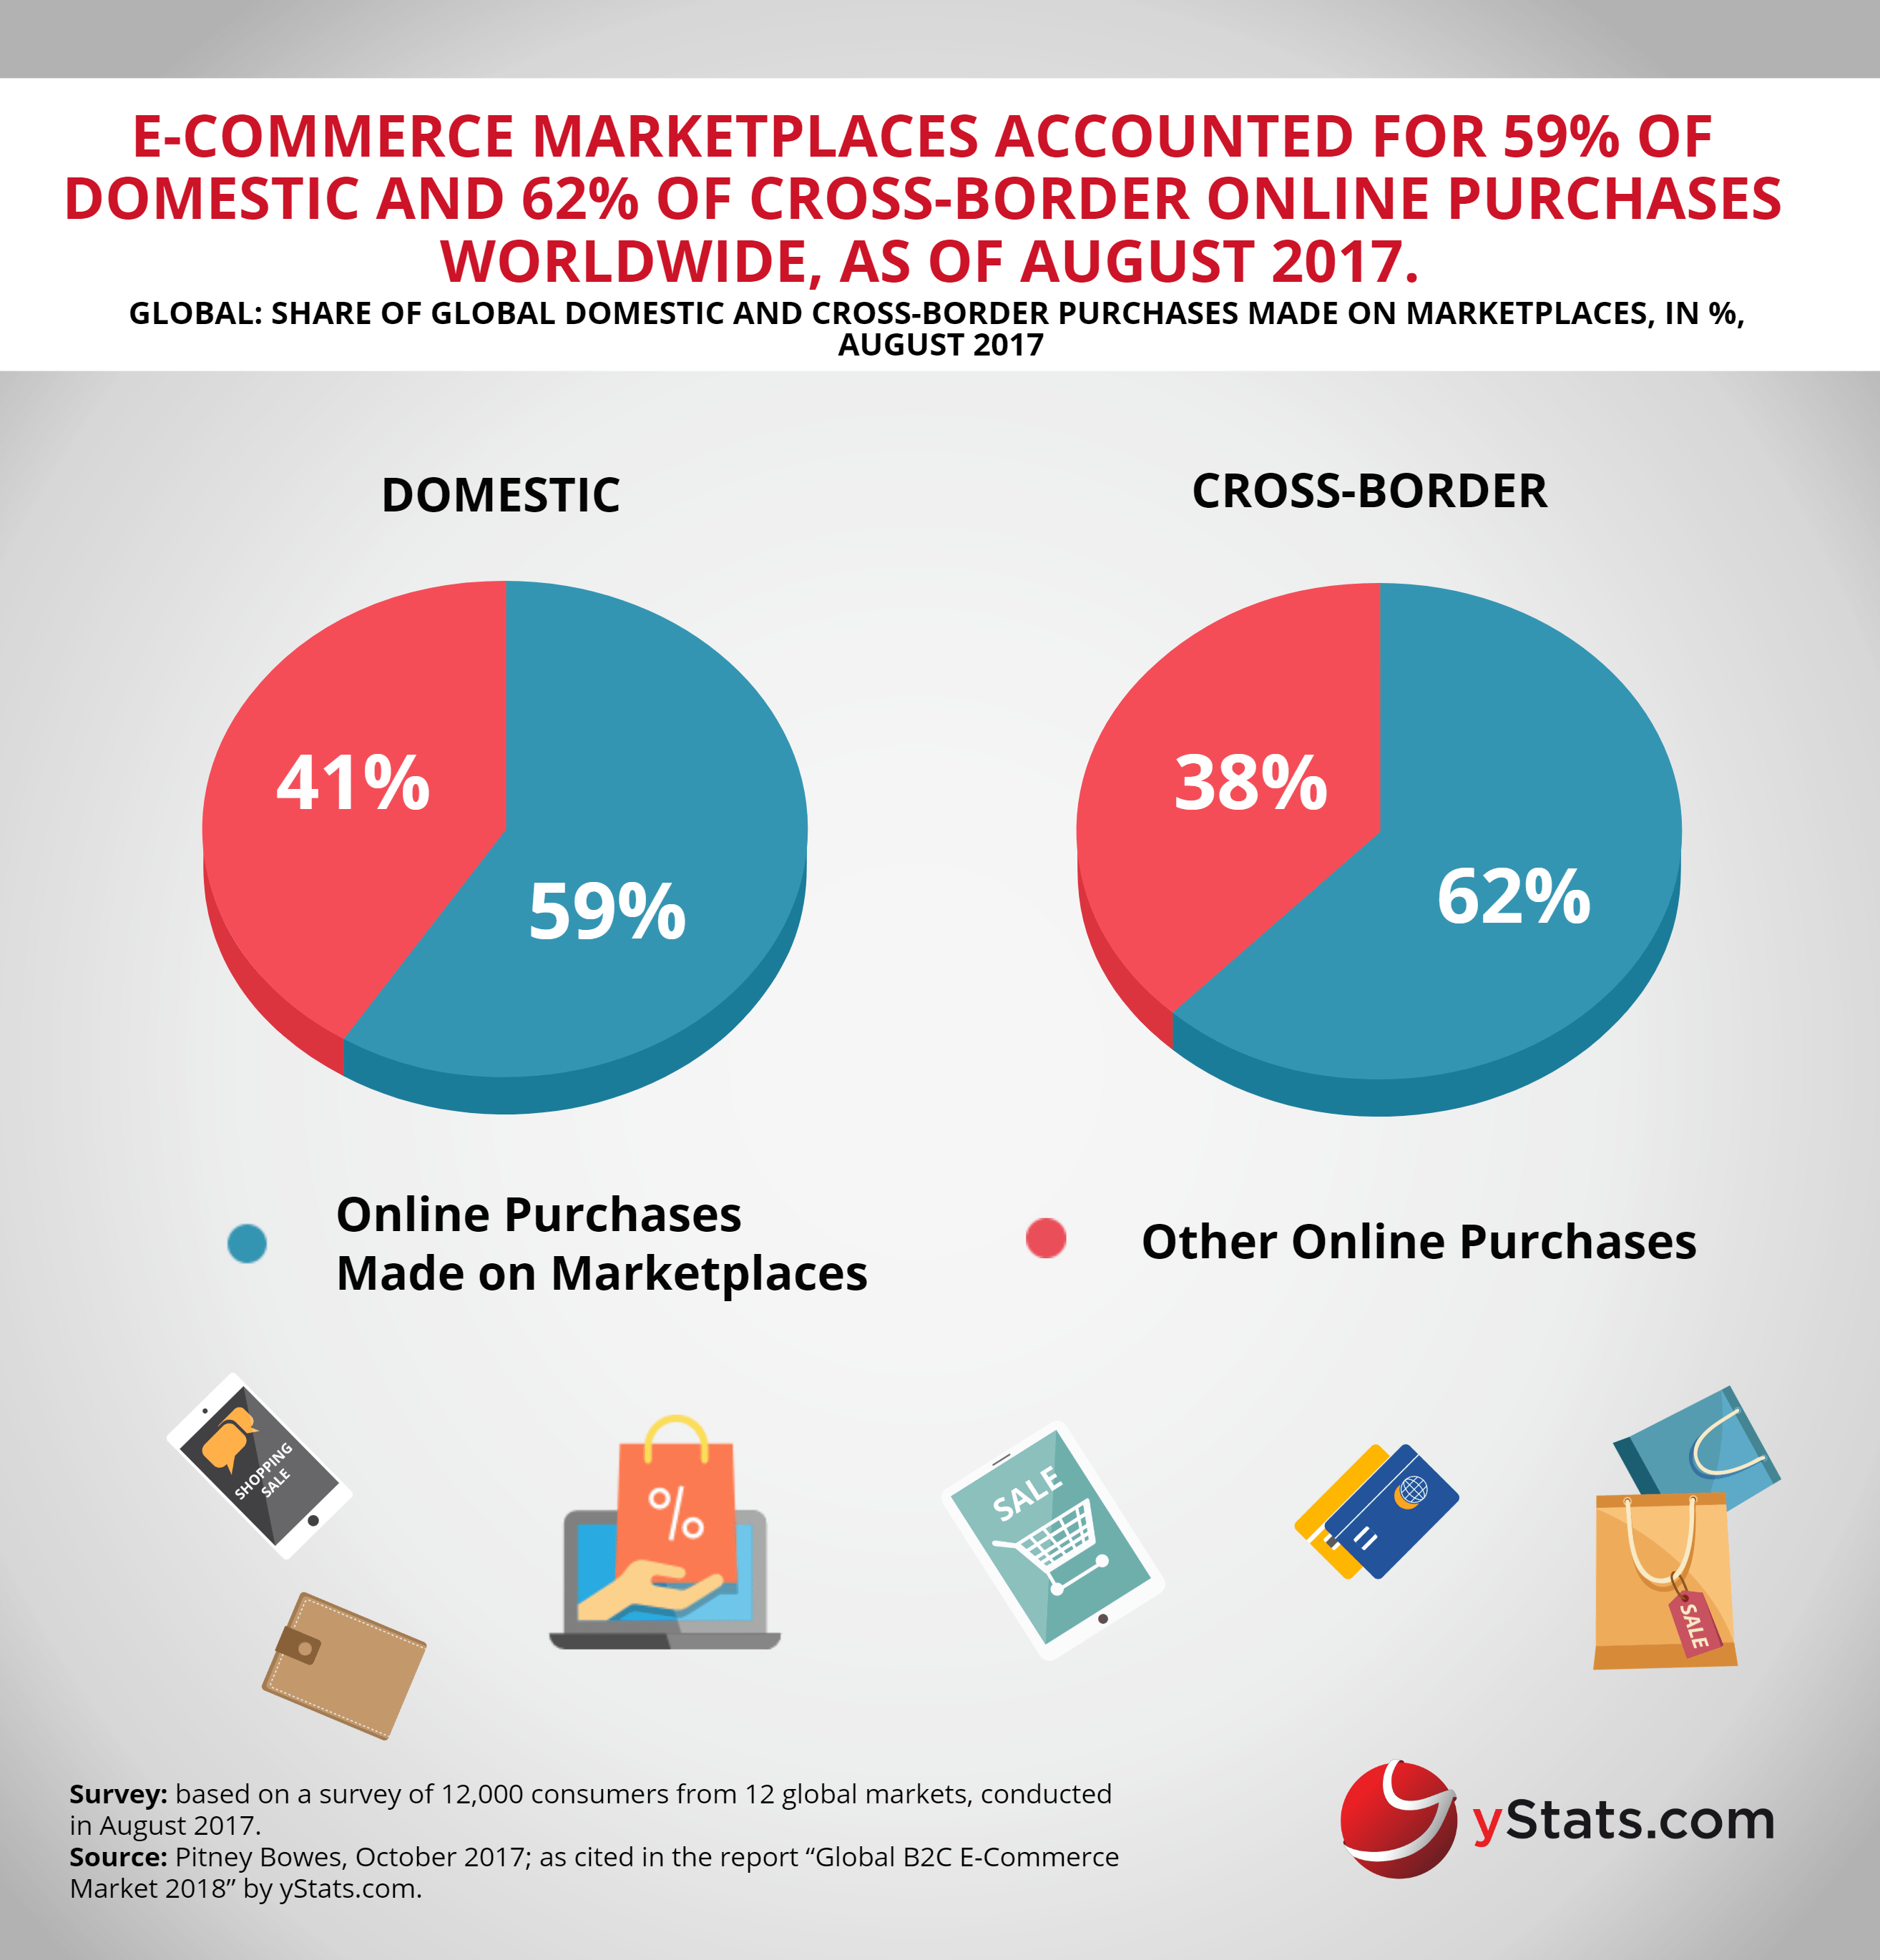 share of global domestic and cross-border purchases marketplaces